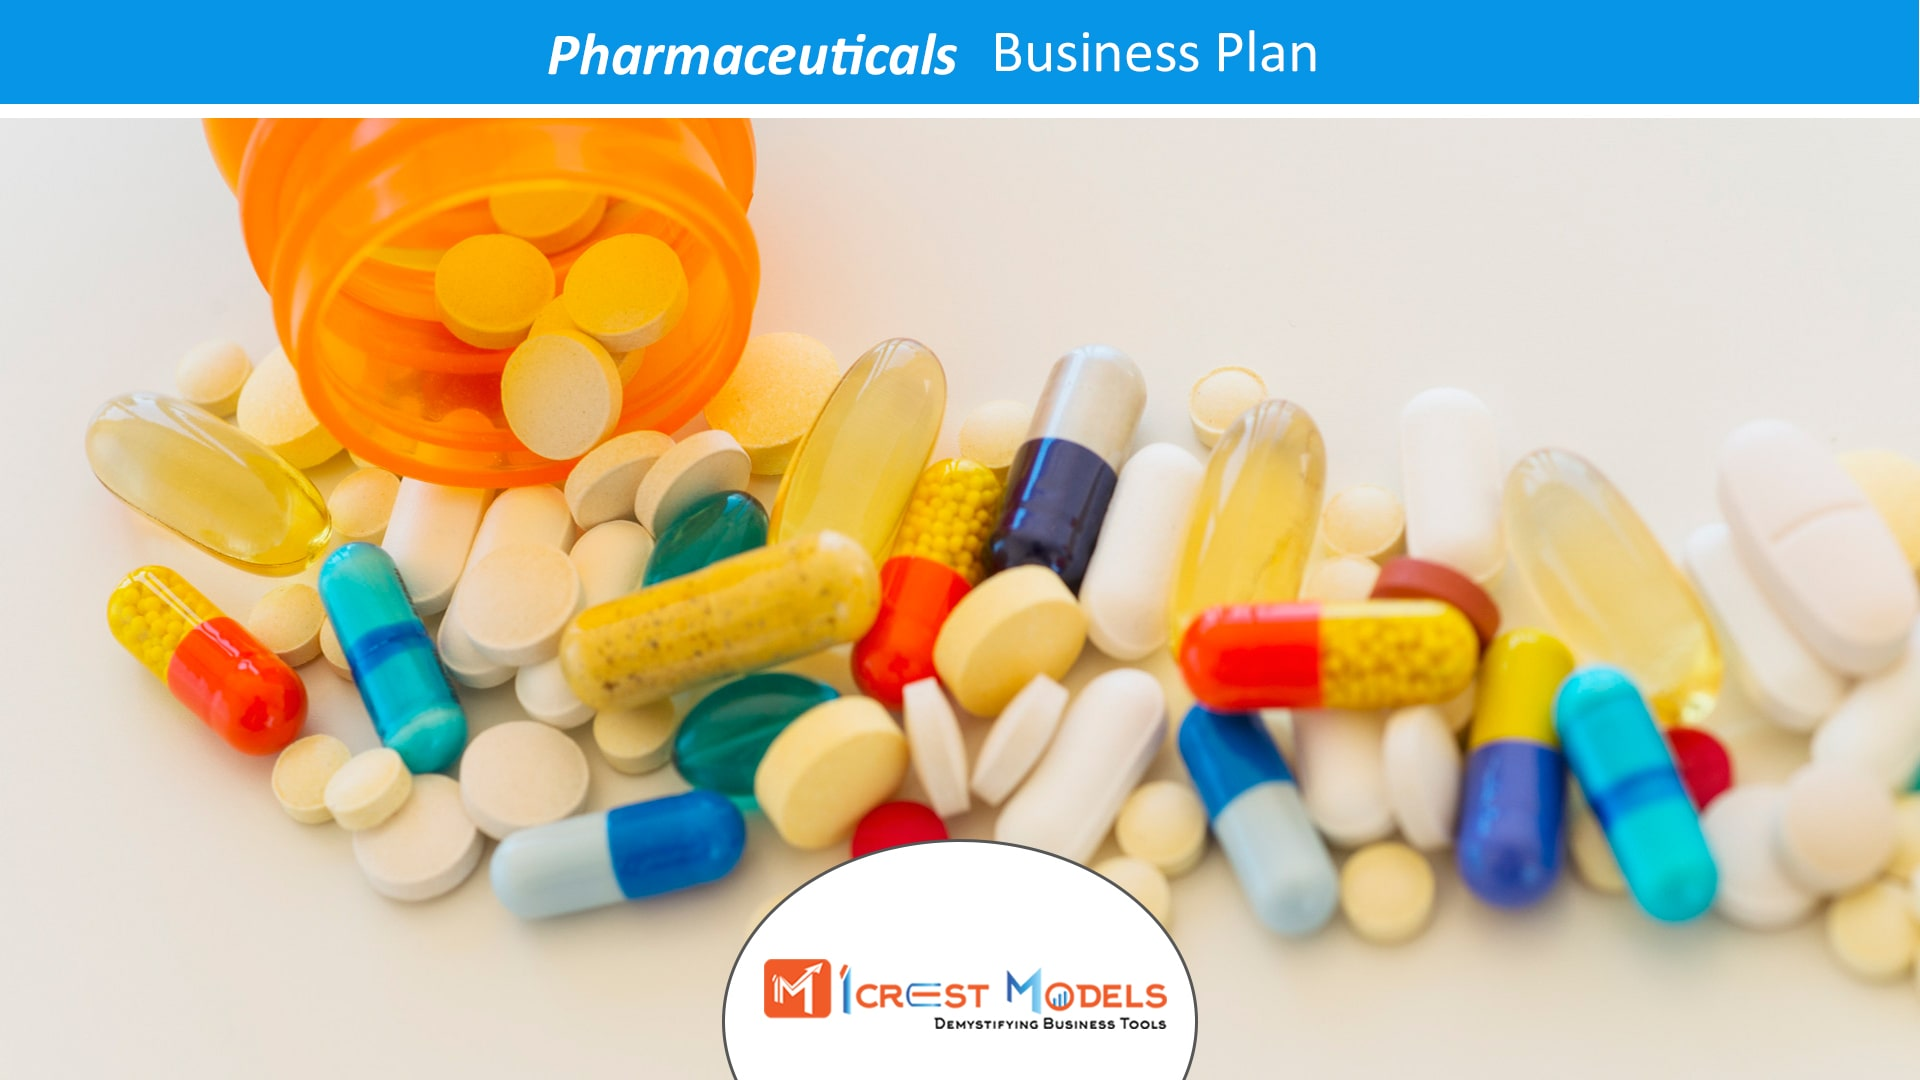 Business Plan For Pharmaceuticals Company